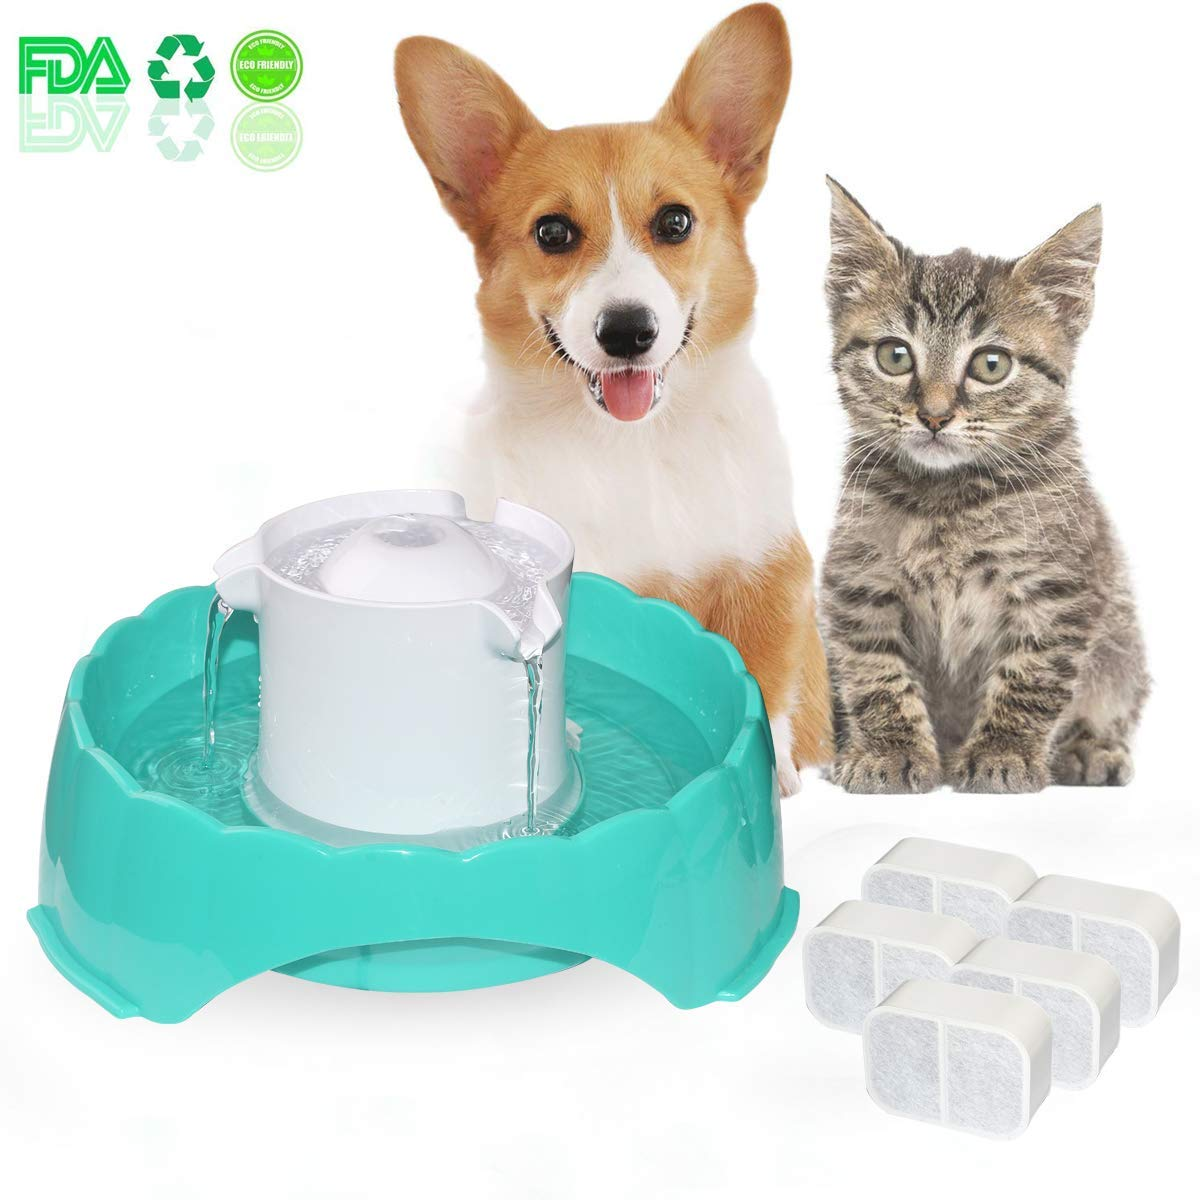 Pet Water Fountain Drink Dispenser, Multi-Functional Smart Circulating Water Dispenser, 5 Drinking Ways Automatic Feeder 5PCS Replacement Filters, Super Silent DC 5V Pet Water Bowl for Cats and Dogs